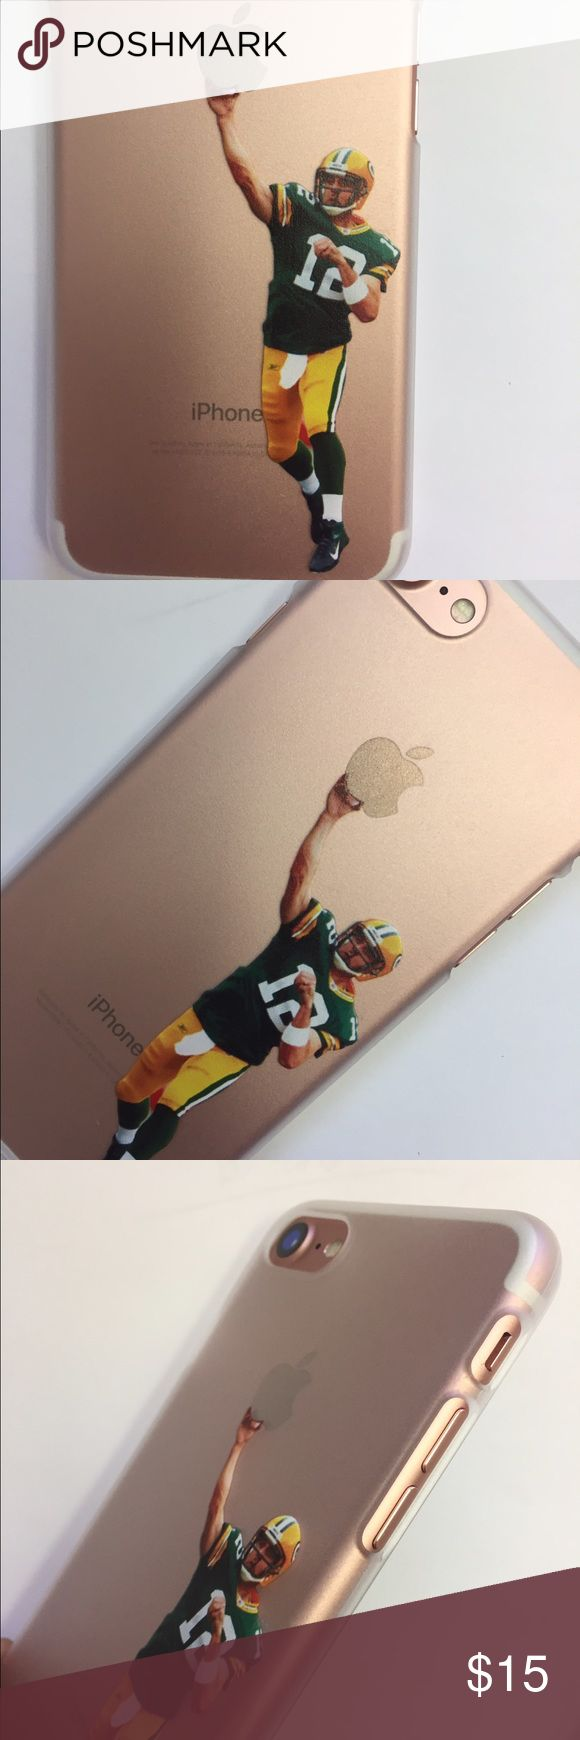 Aaron Rodgers iPhone 7 case New iPhone 7 Aaron Rodgers semi transparent plastic shell case with printed image not a sticker Jordan Accessories Phone Cases